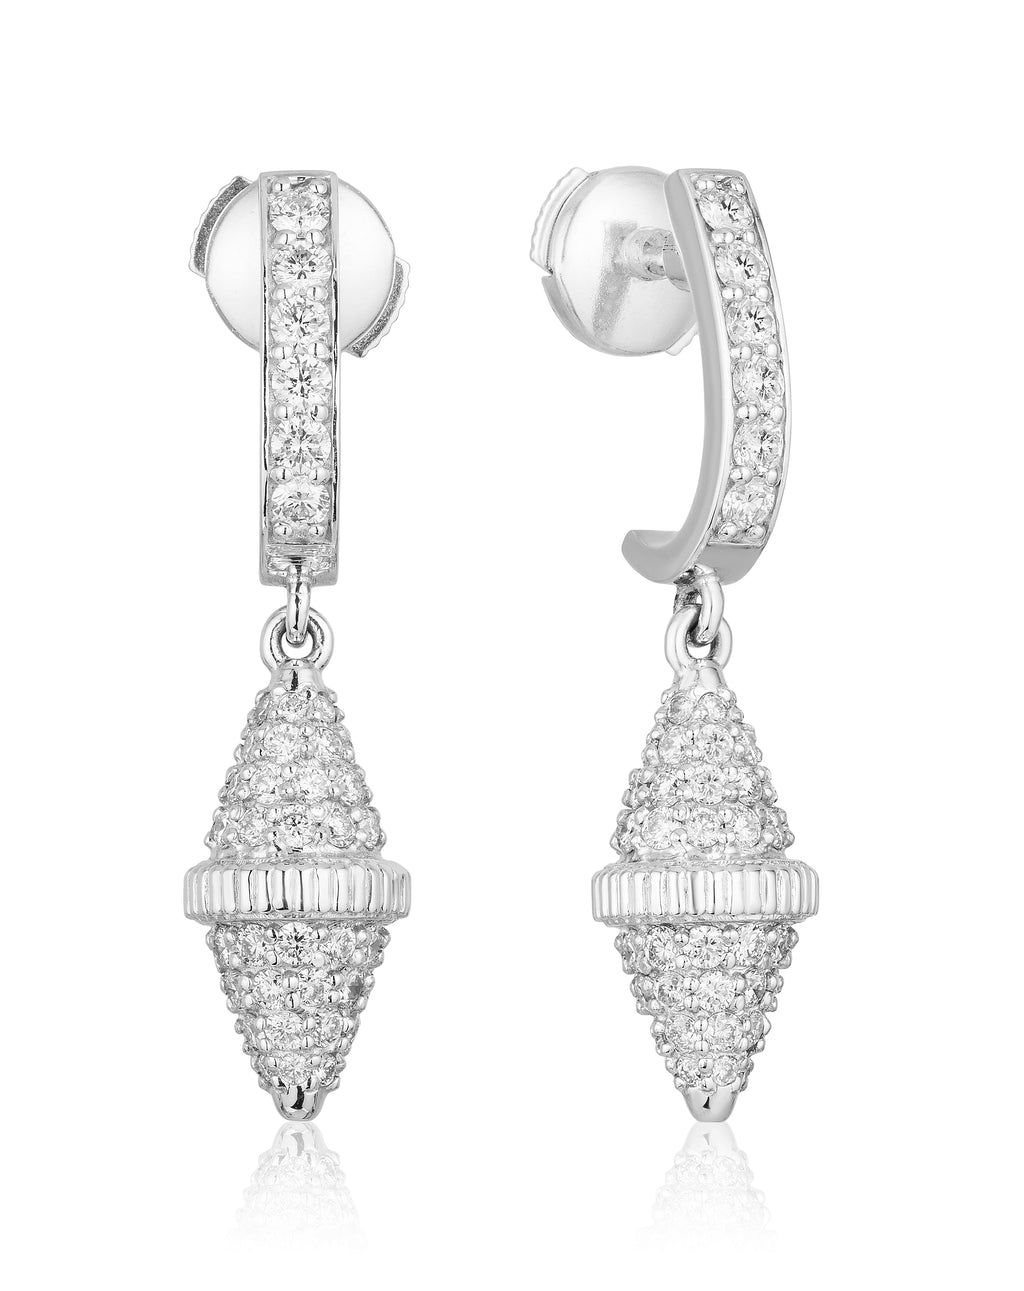 Golden Iconec Earrings with Paved Diamonds (Full, White)